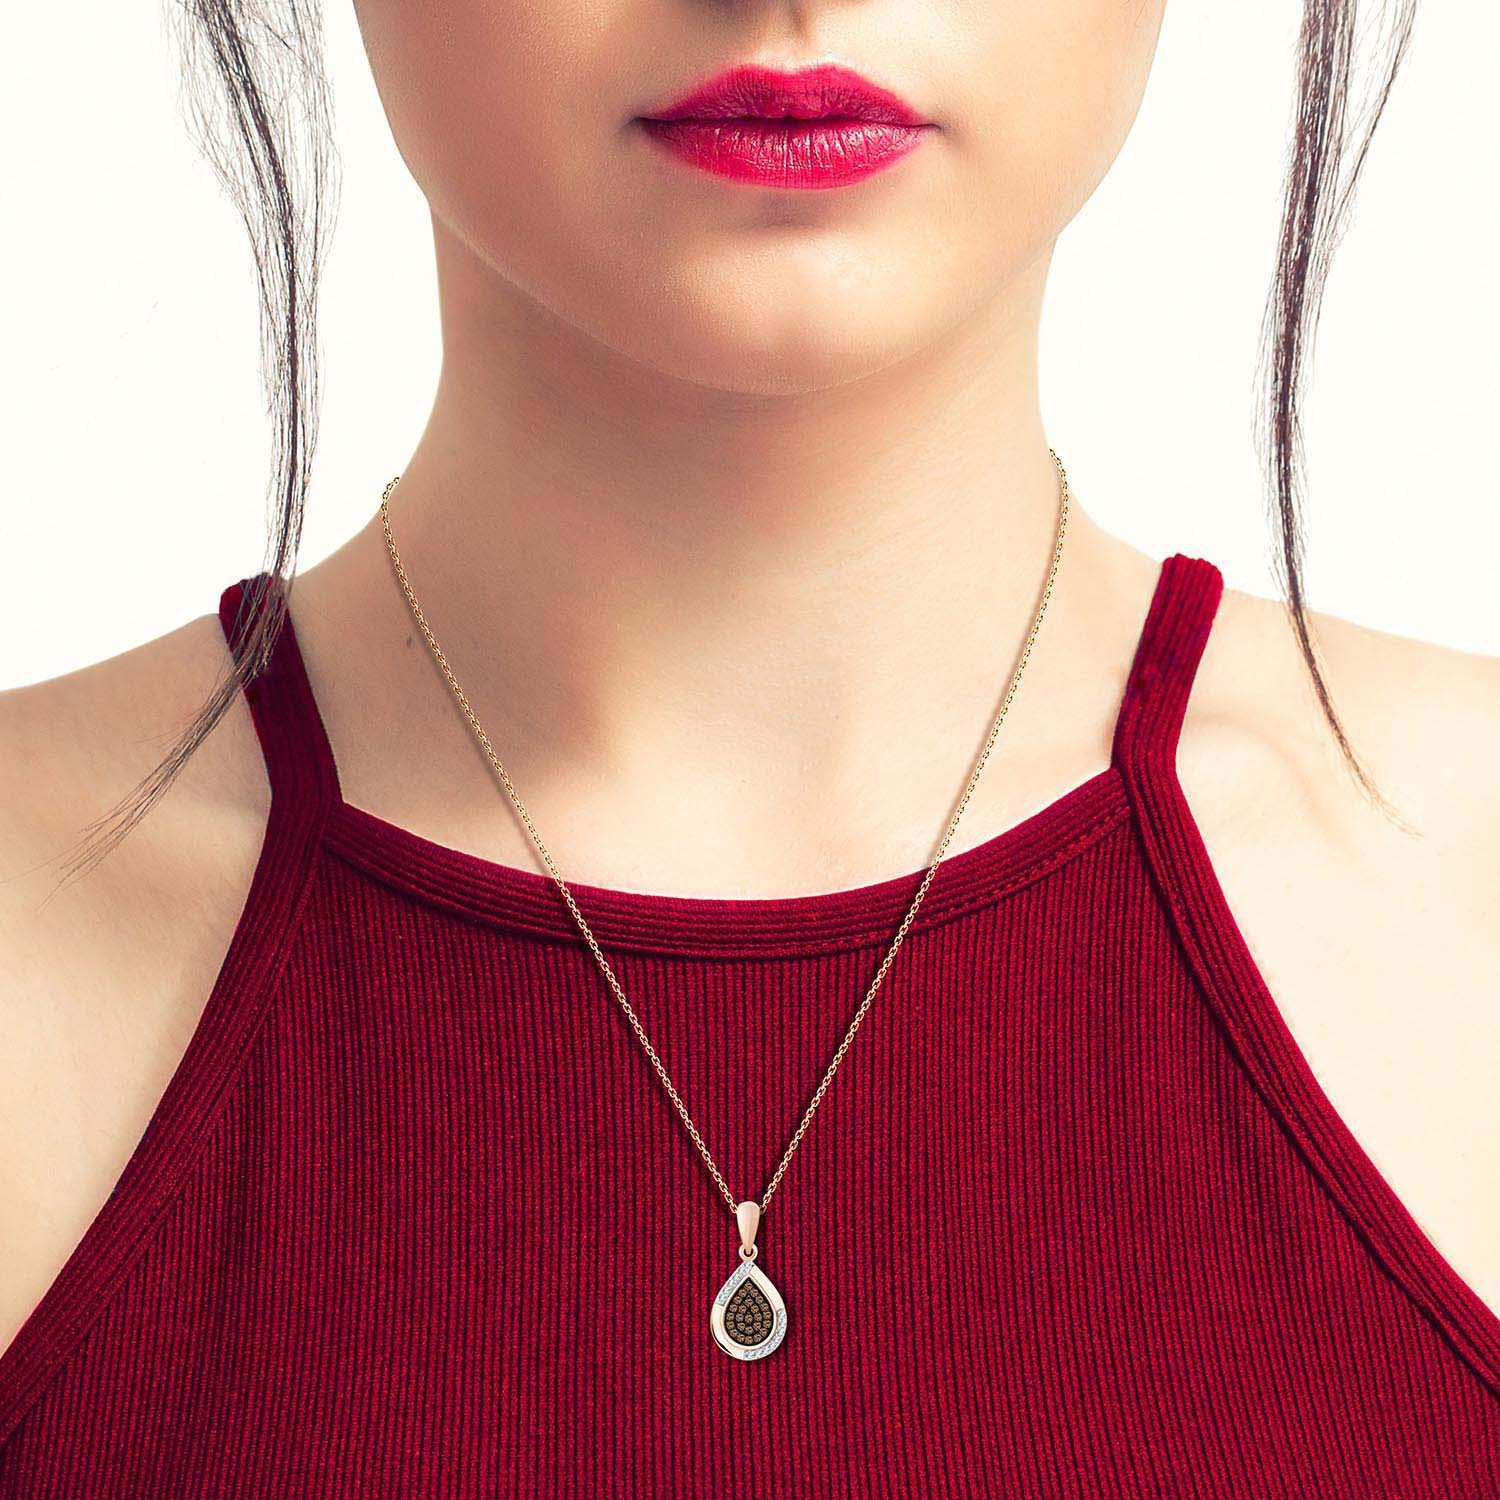 Eternal Bliss 1//6 cttw Round White /& Brown Diamond Pear Drop Pendant with 18 Chain Necklace